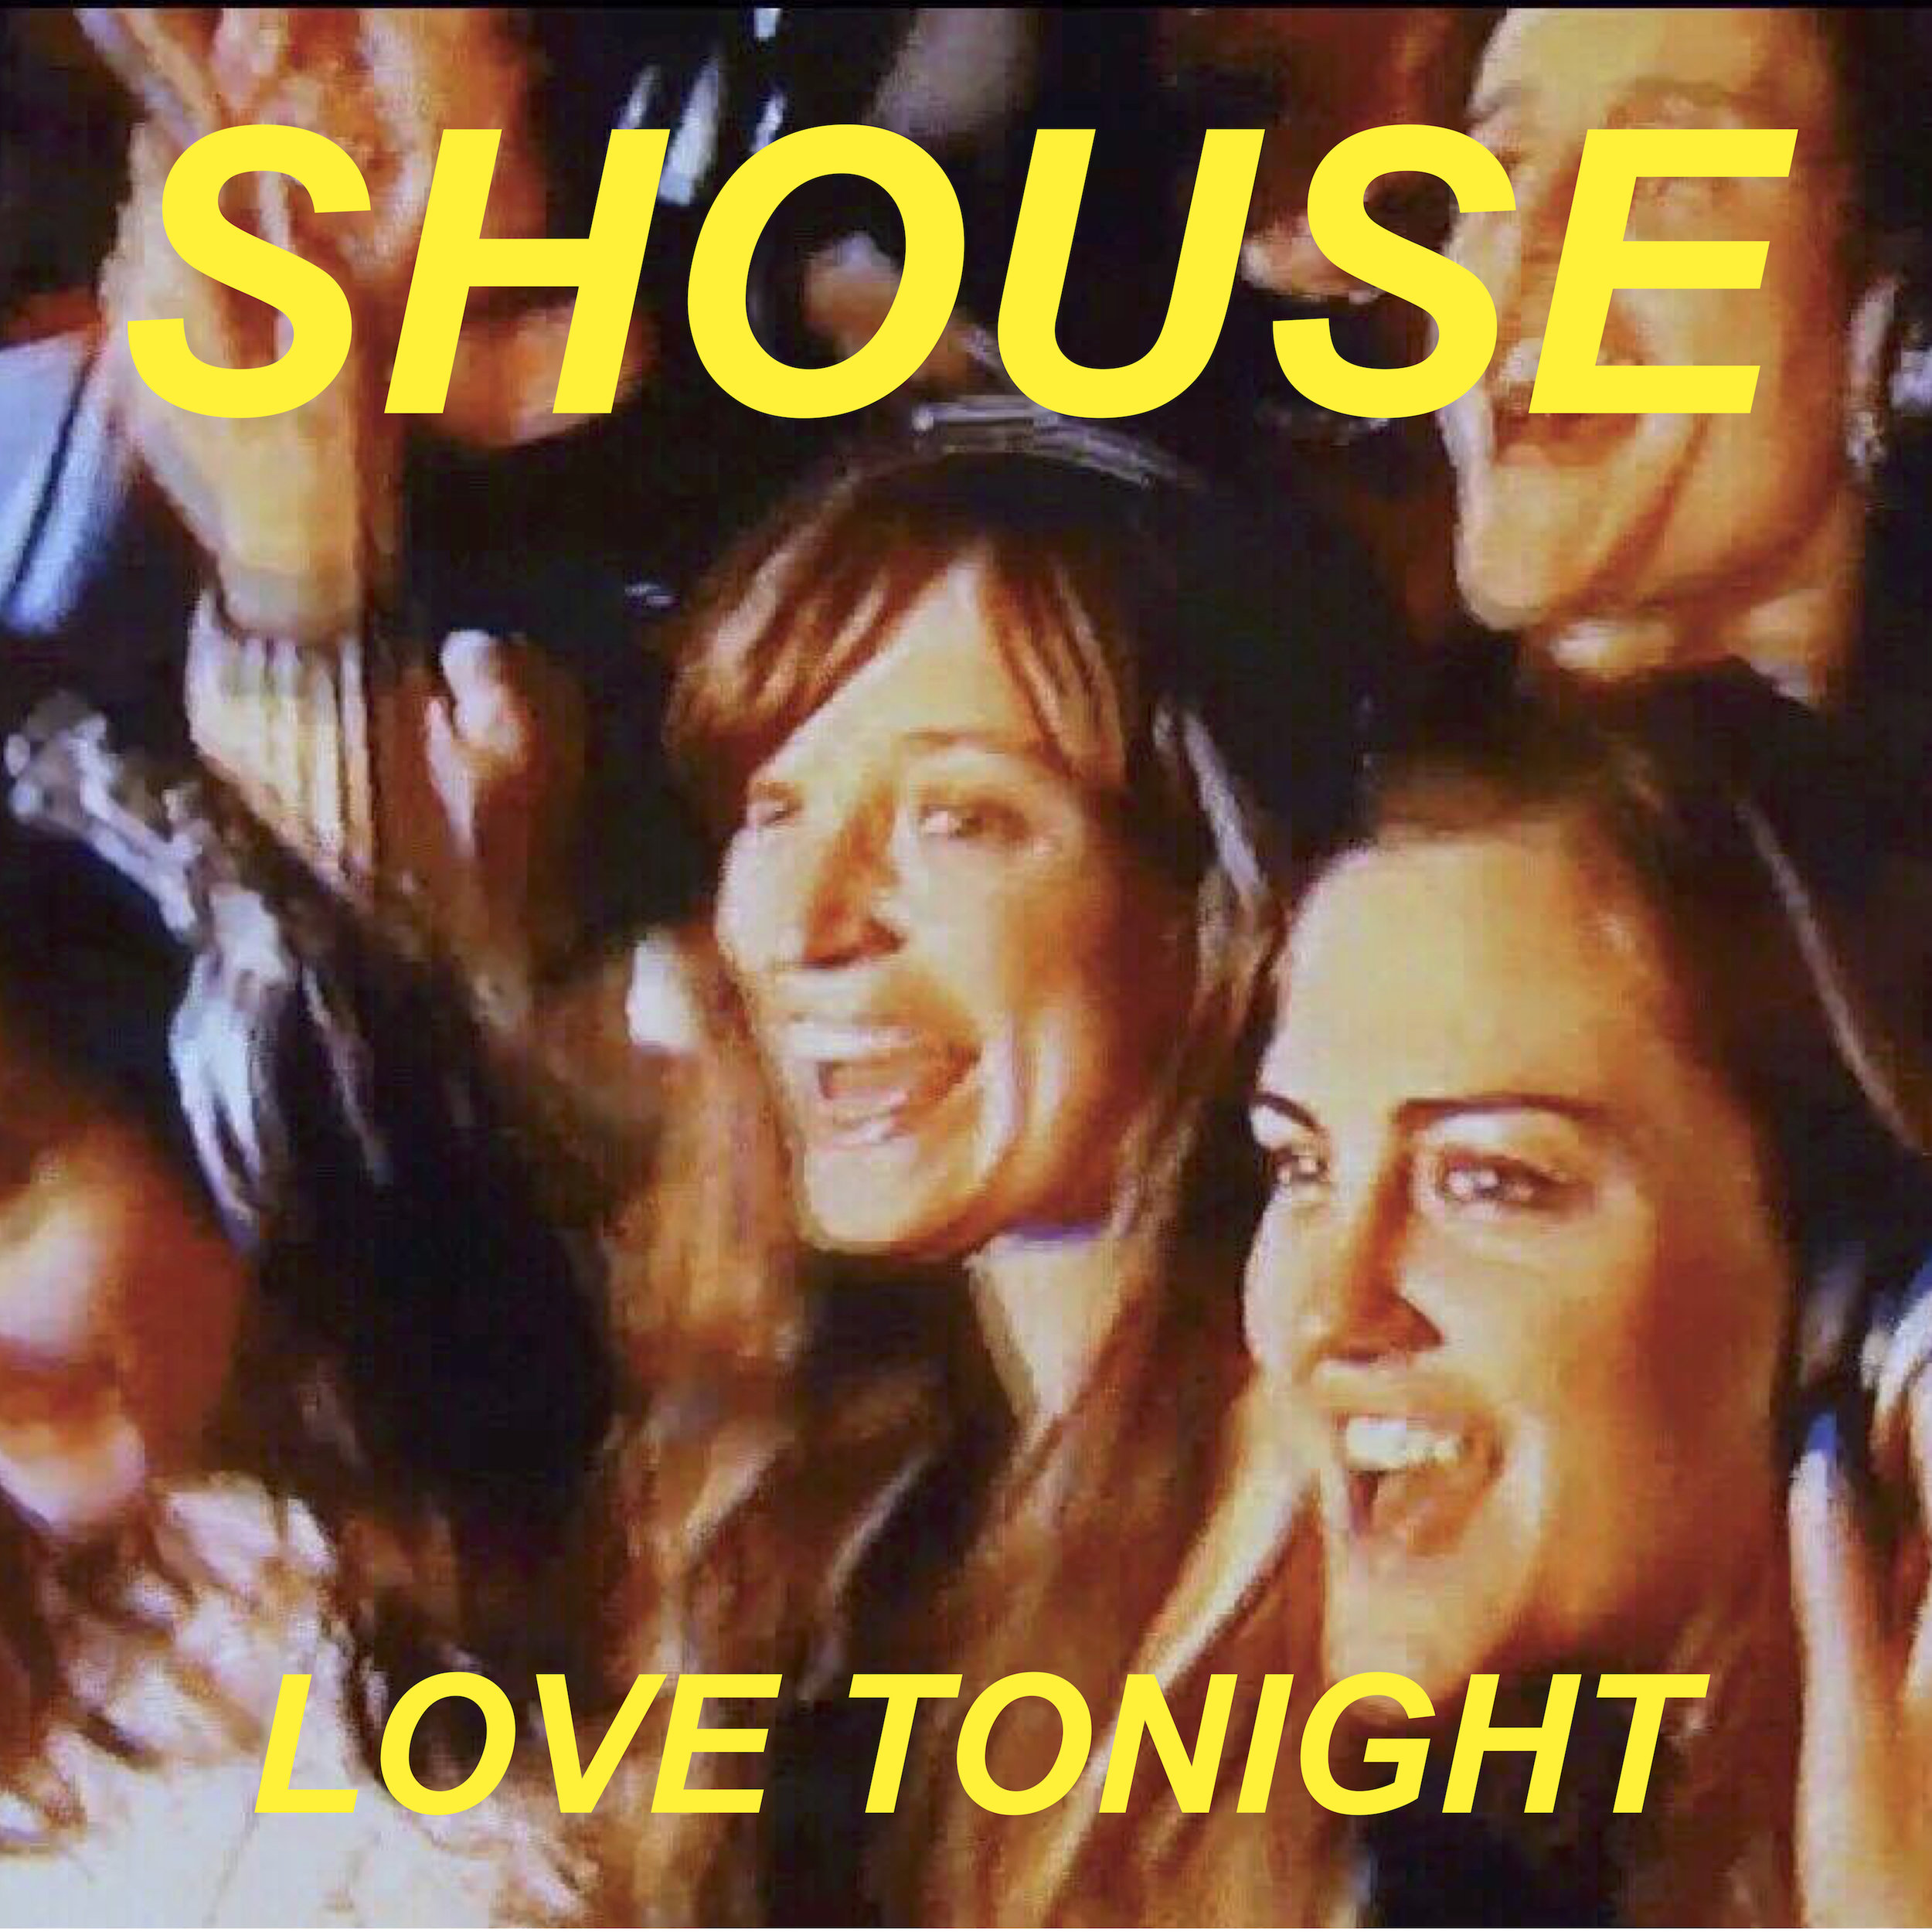 SHOUSE - LOVE TONIGHT Digital Sleeve.jpg